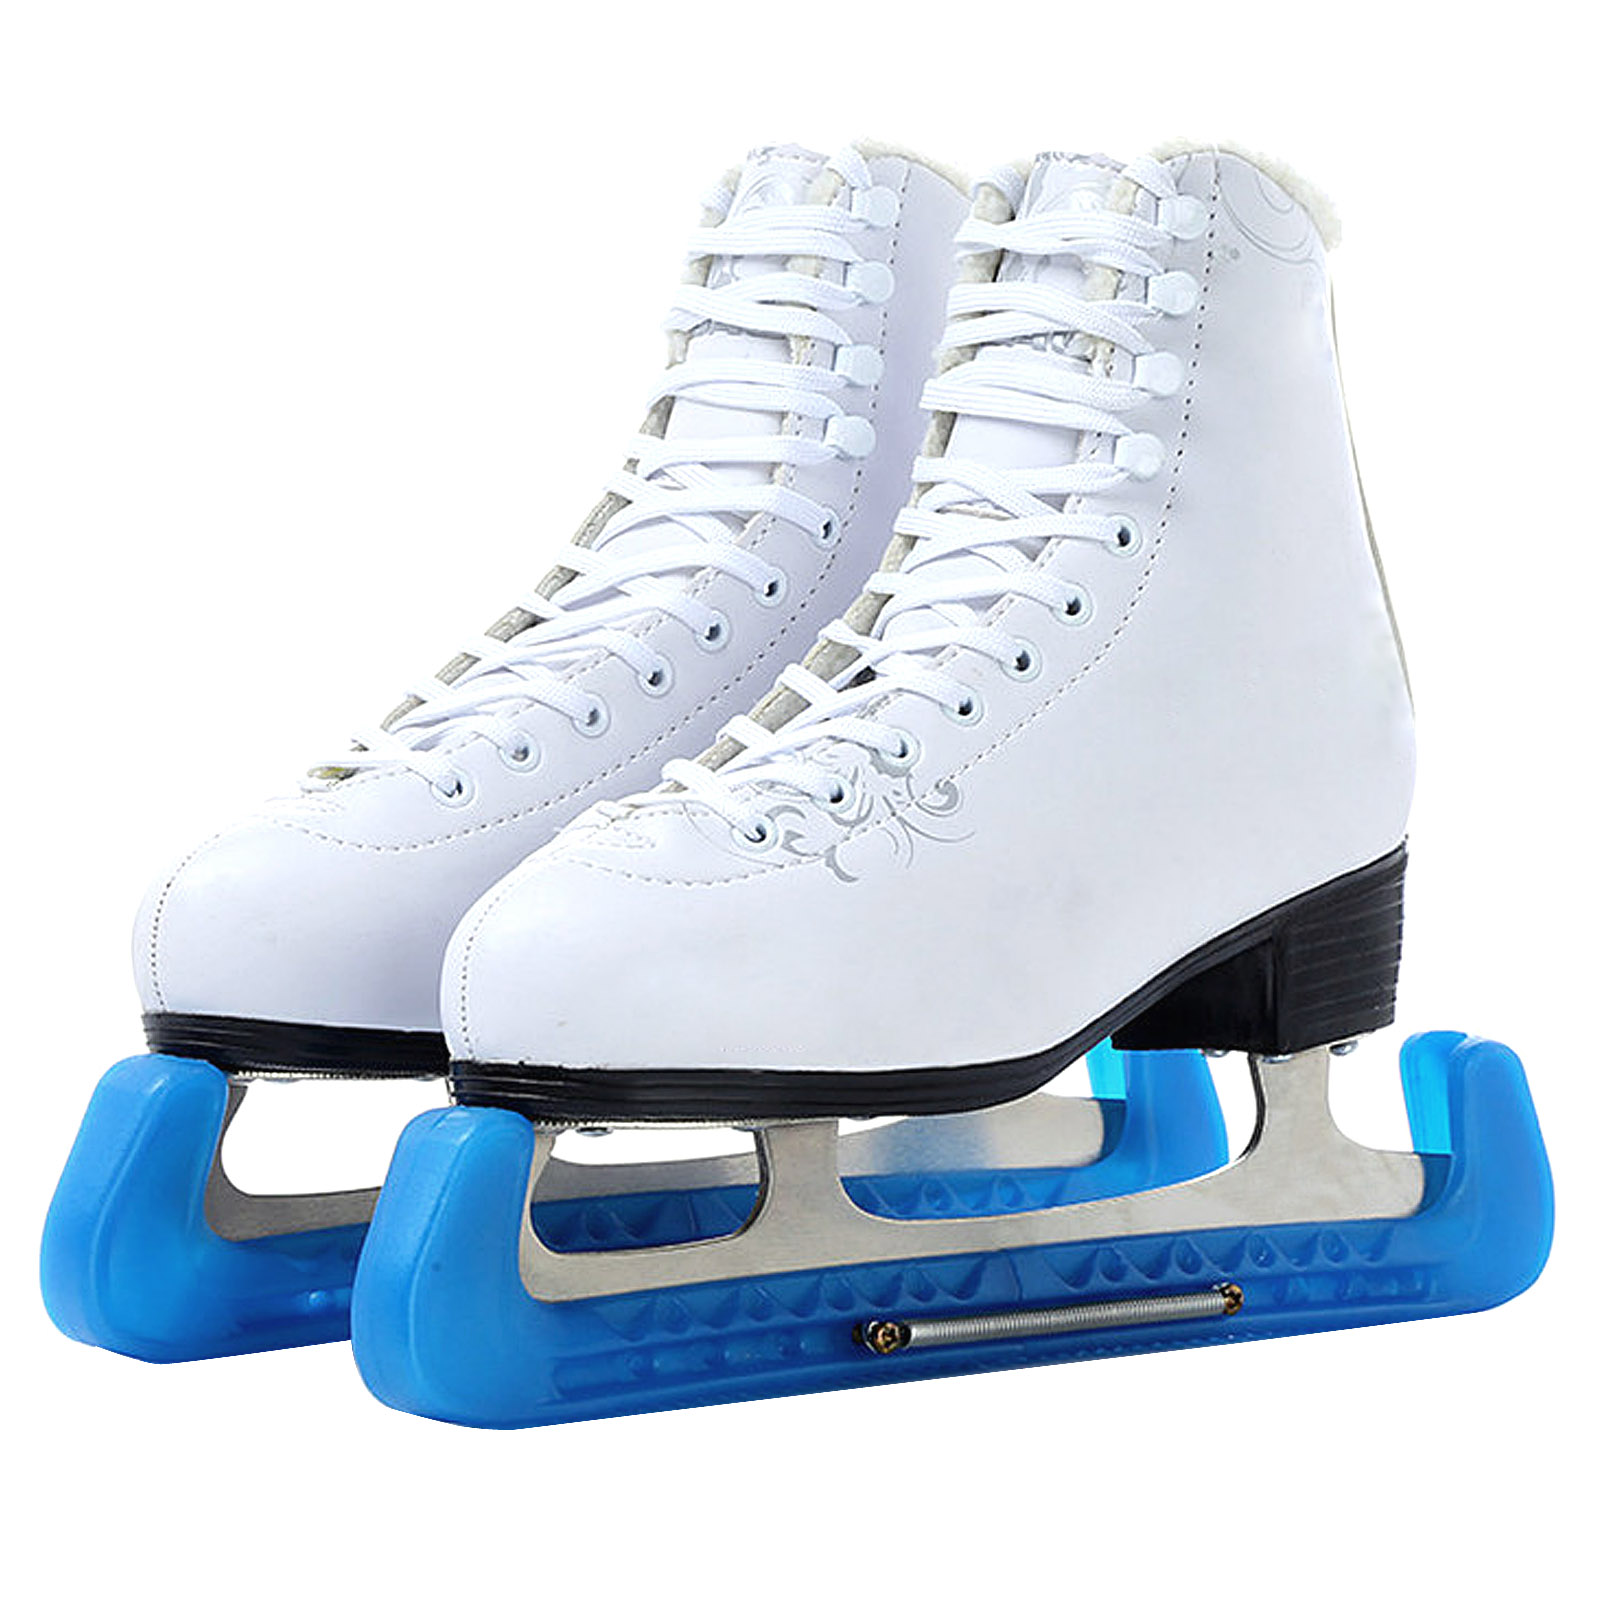 ice figure hockey skate blade protector guards one size